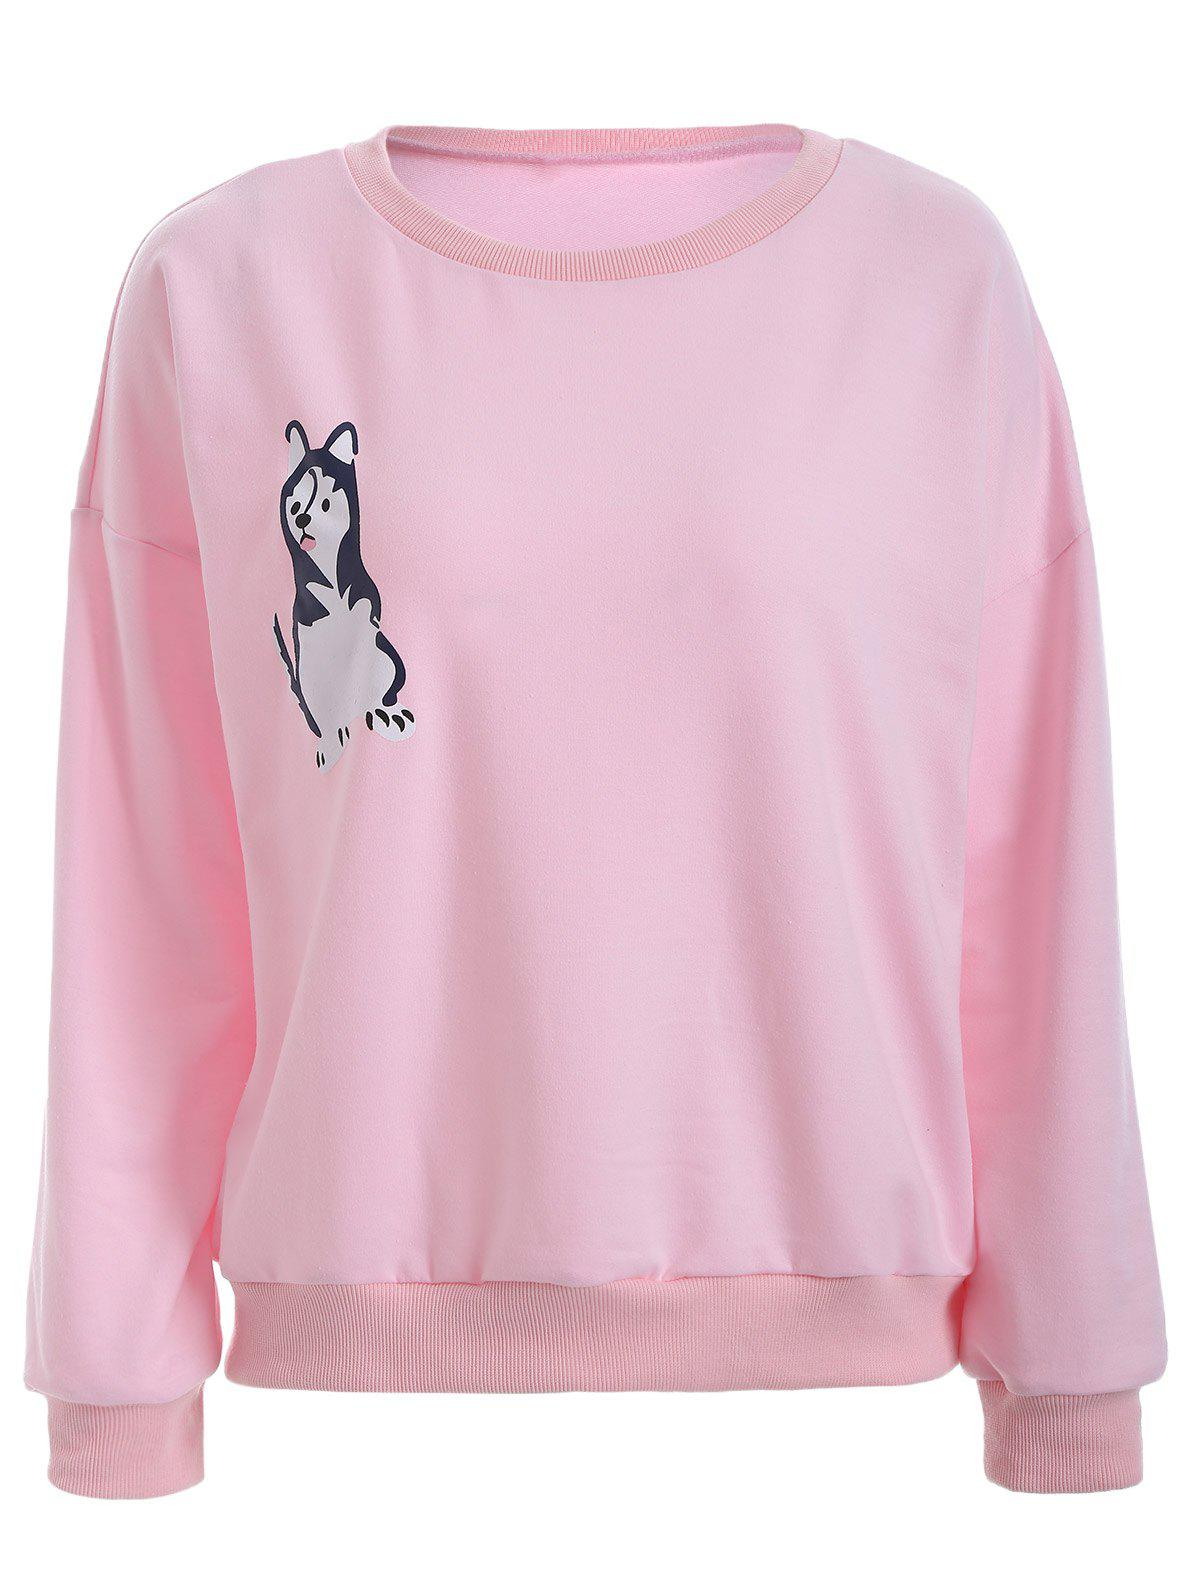 Puppy Imprimer ample Sweatshirt - ROSE PÂLE S